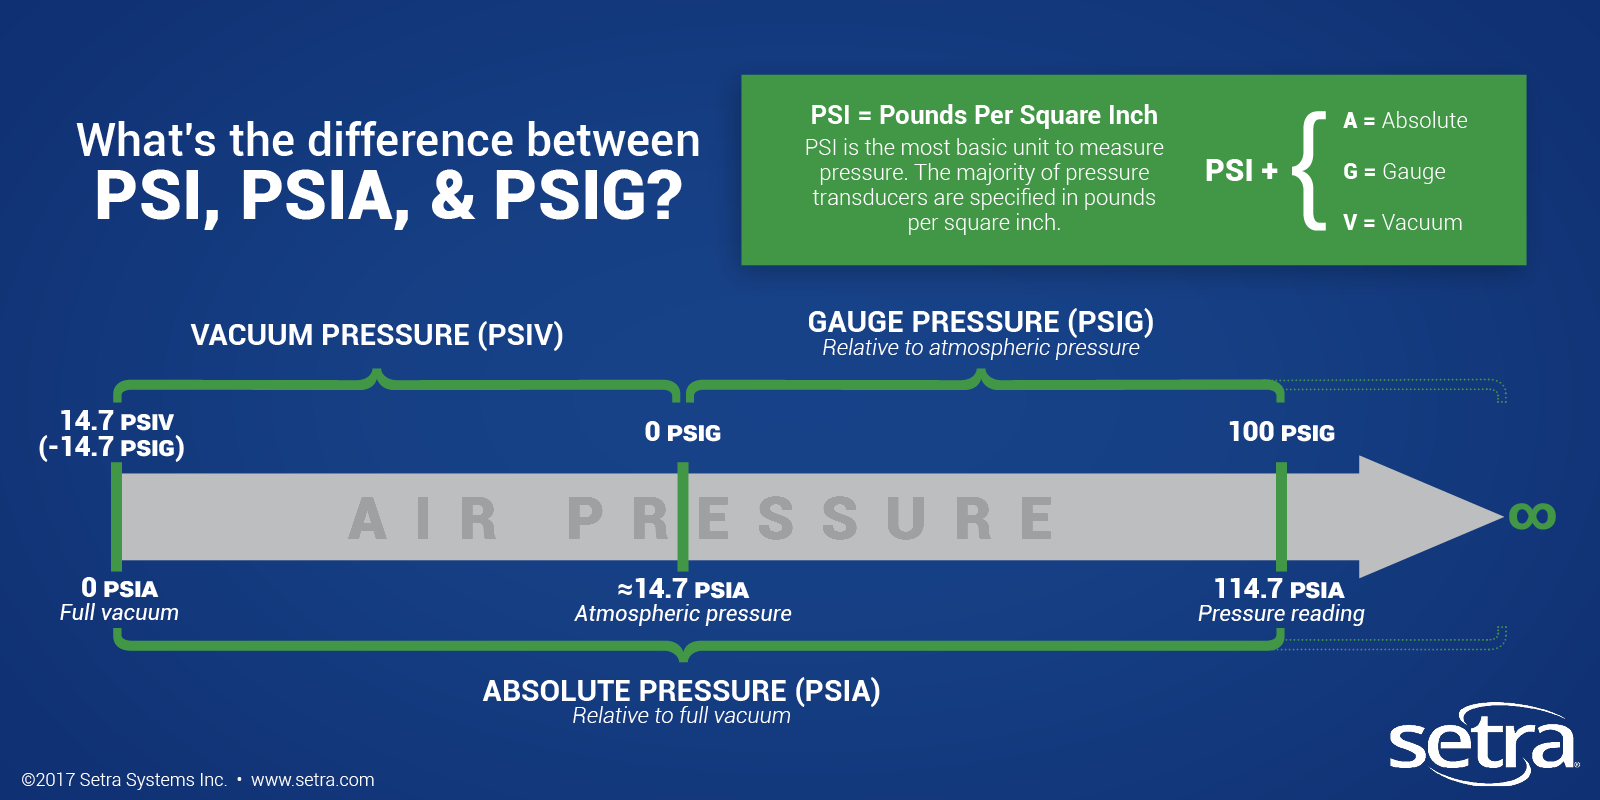 What is the difference between PSI PSIA and PSIG?